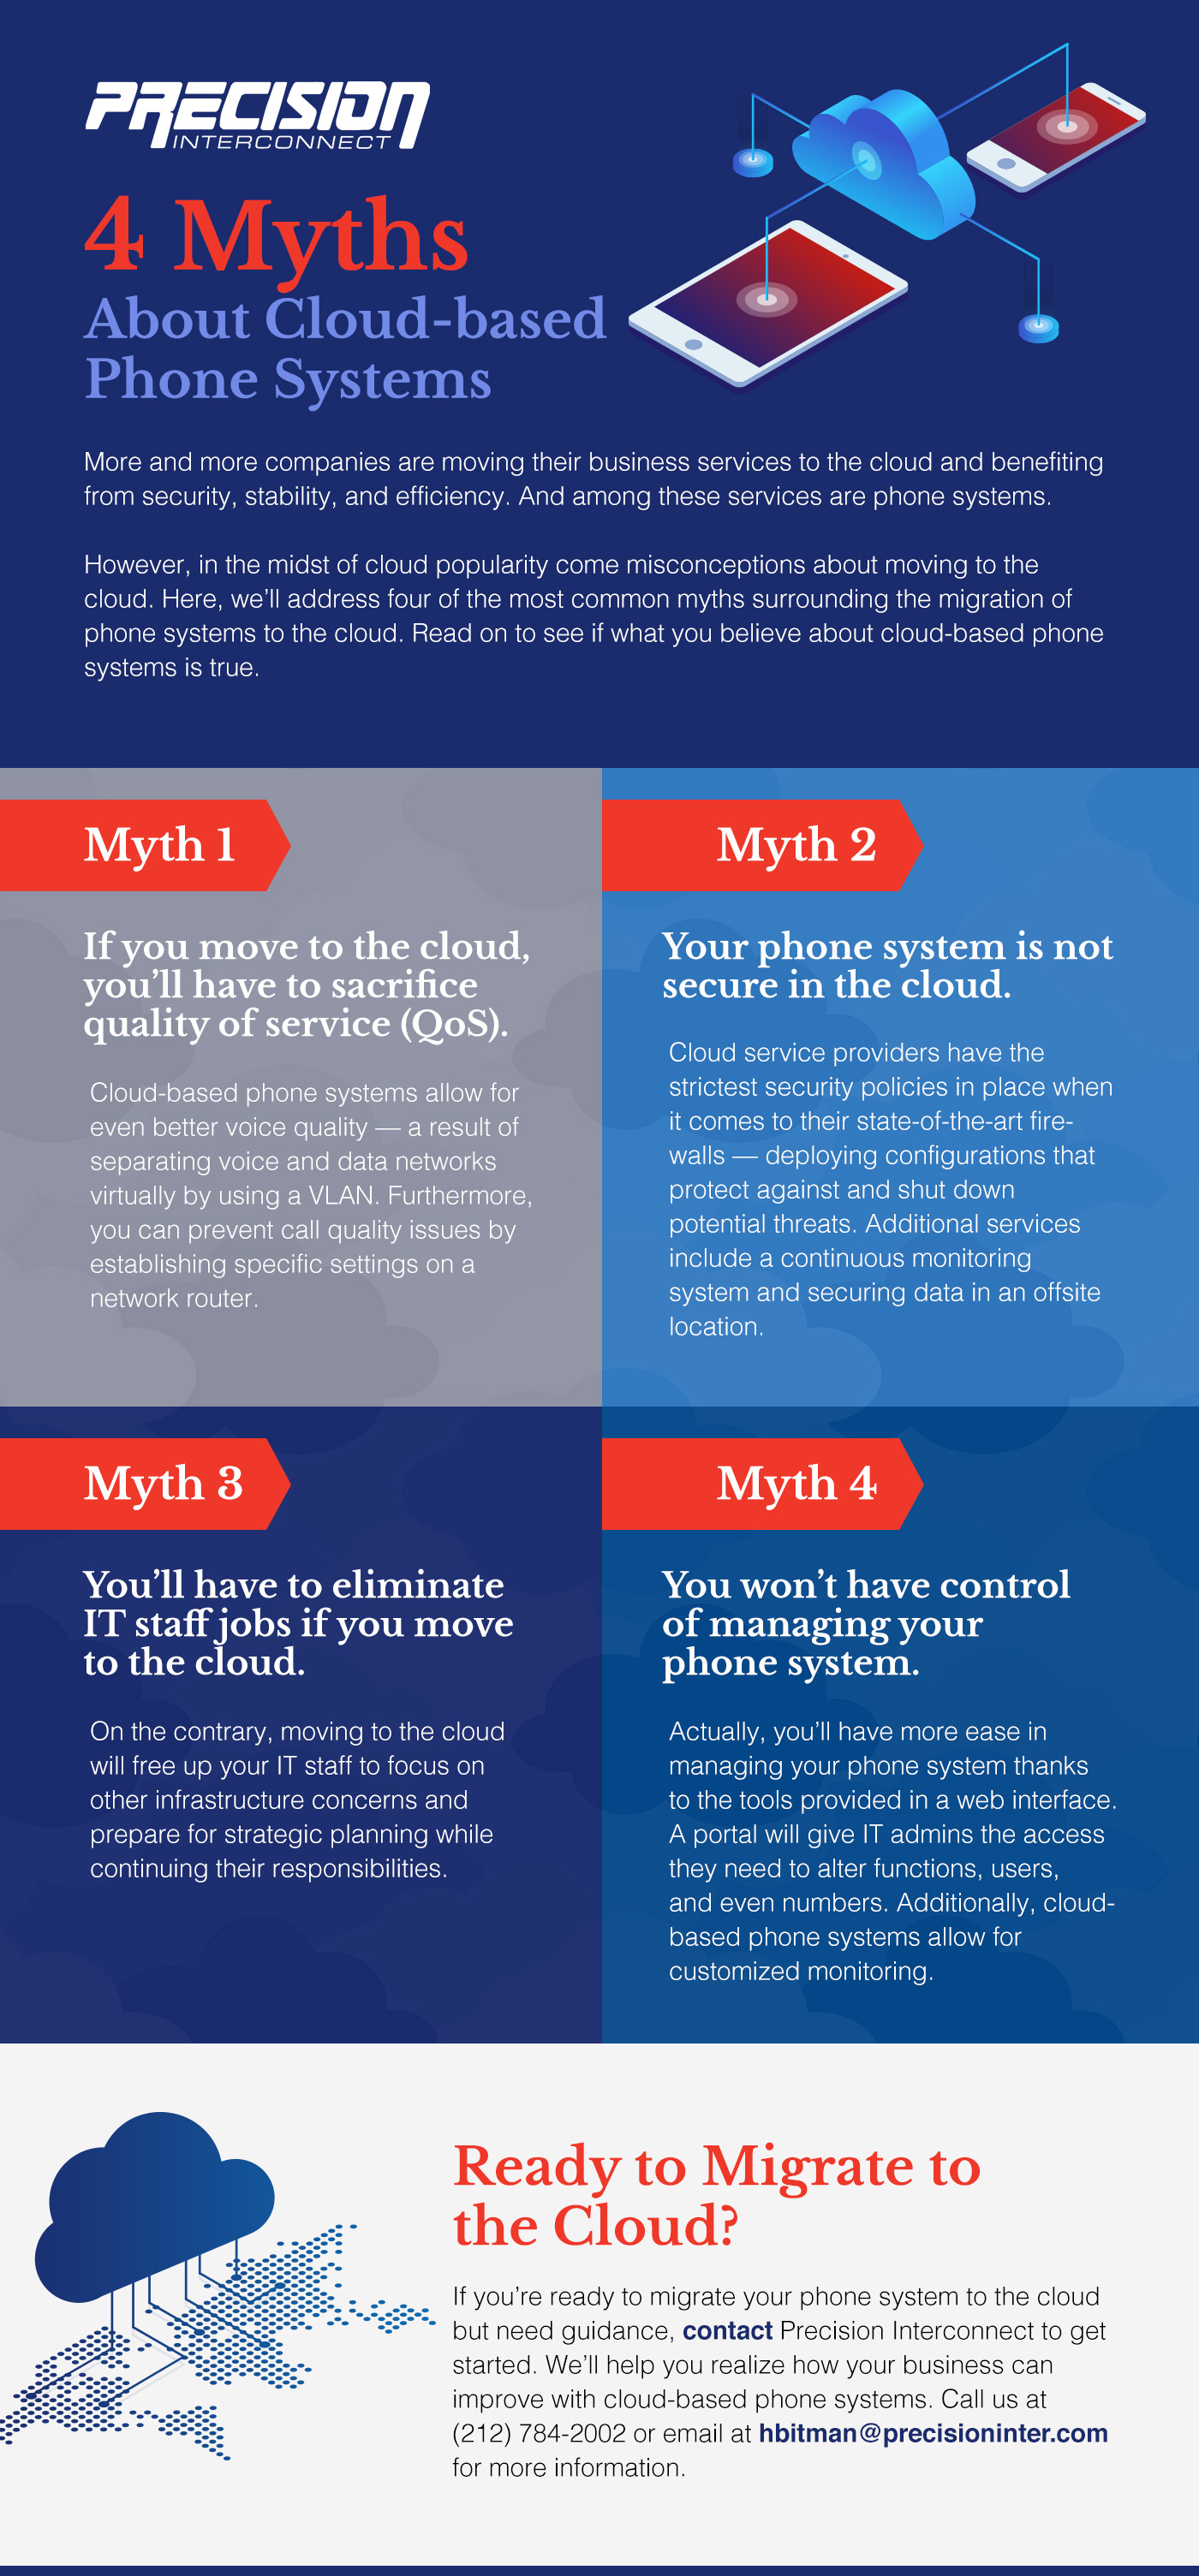 Learn about myths surrounding cloud-based phone systems